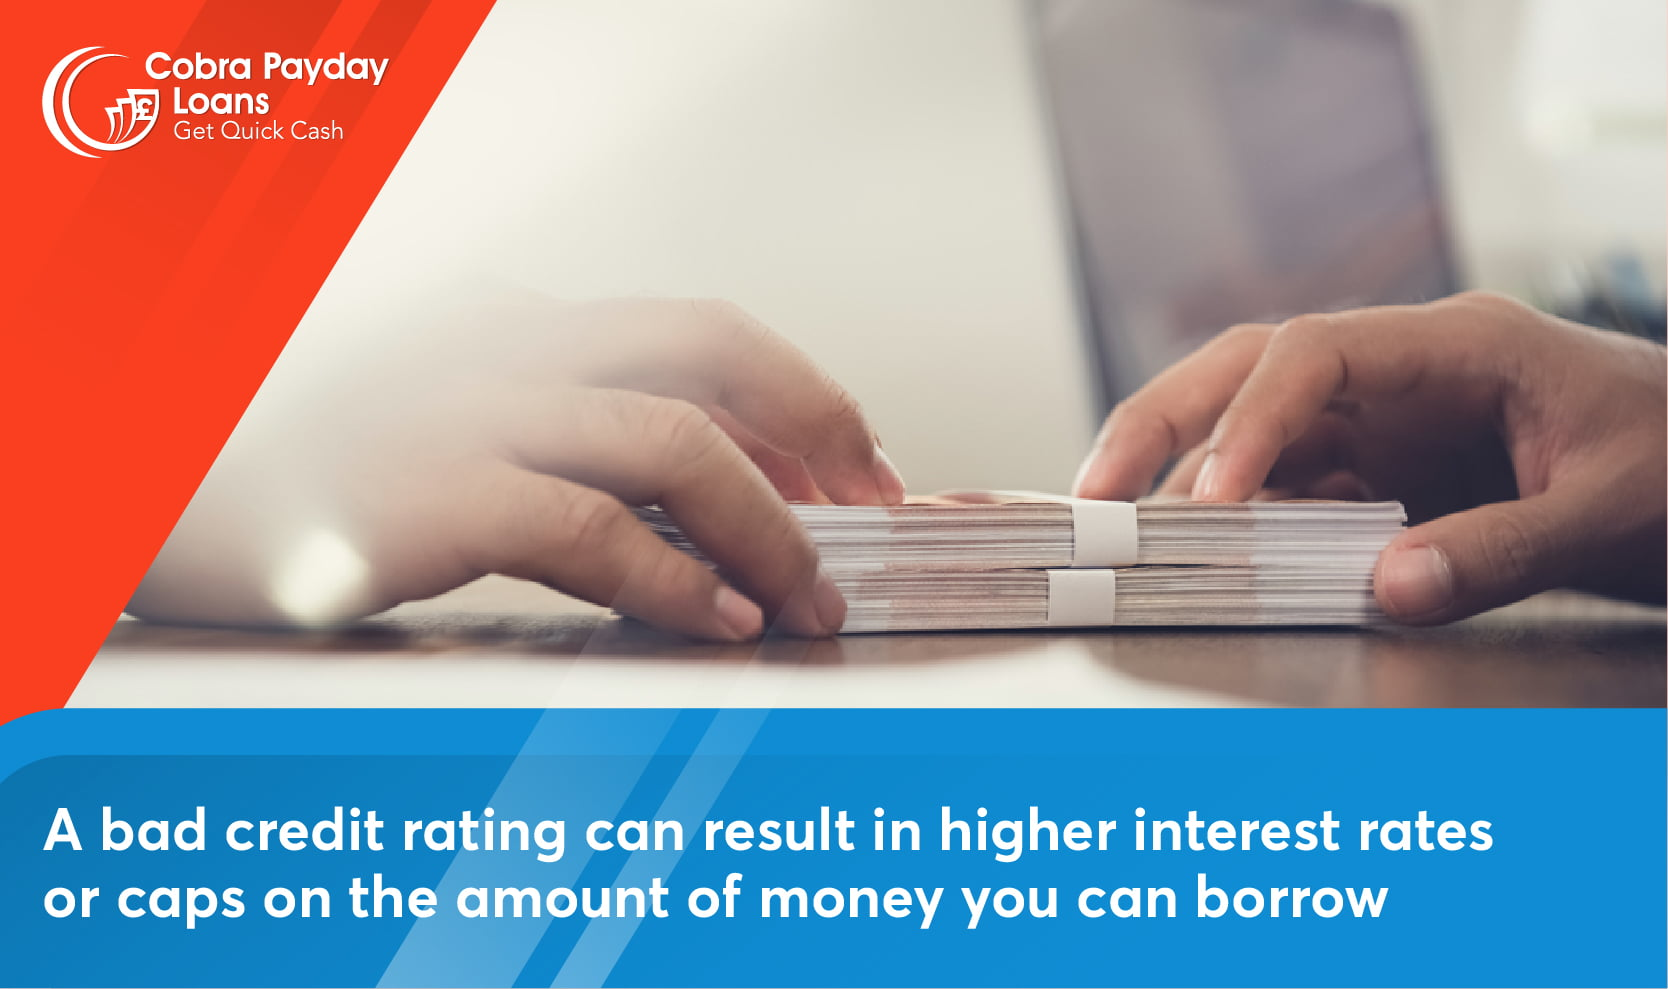 A bad credit rating can result in higher interest rates or caps on the amount of money you can borrow